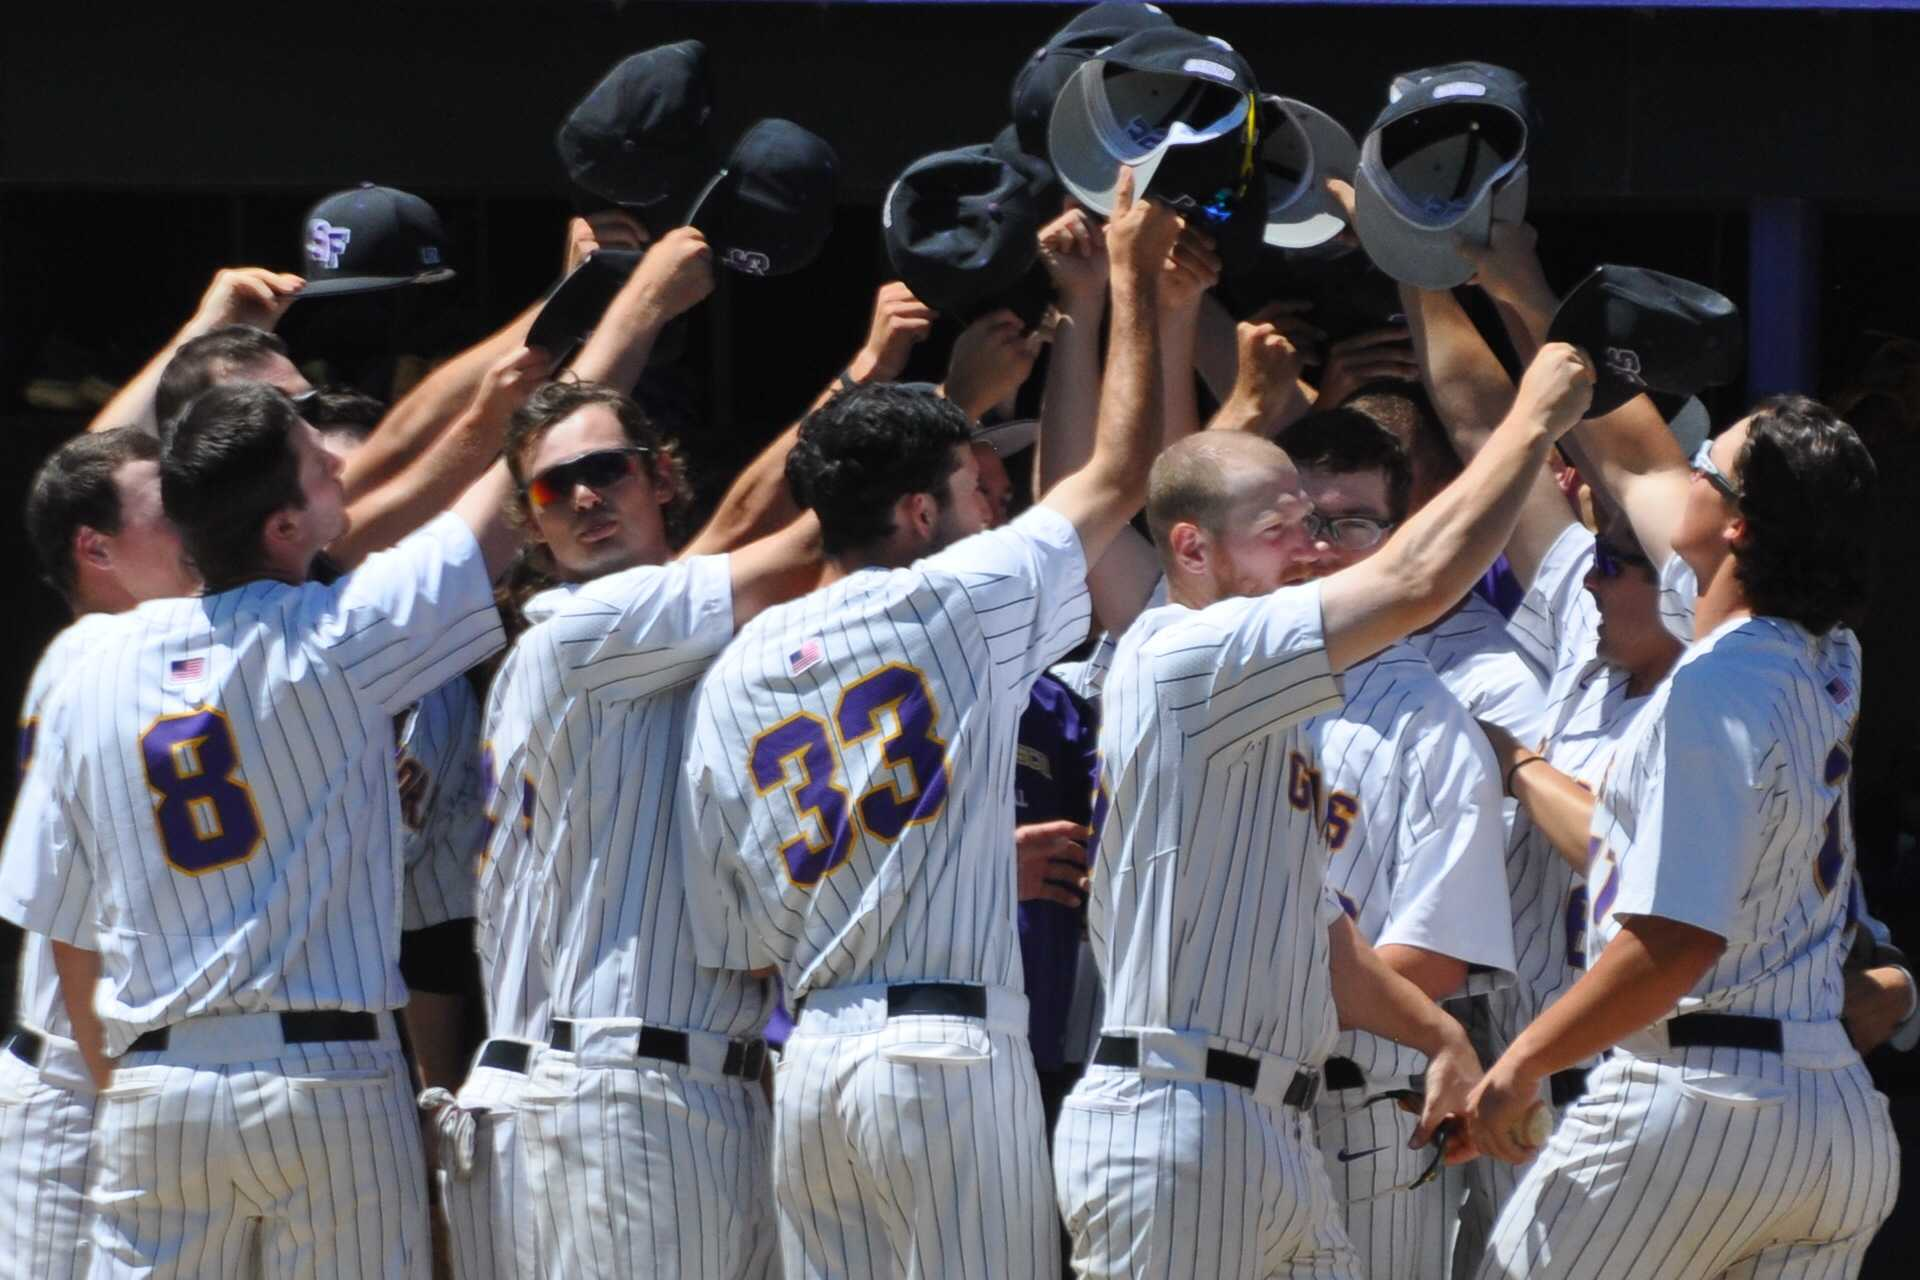 SF State Gators celebrate a 3-run RBI in the dugout against CSU Dominguez Hills on April 29 (Renee Smith/ Xpress)